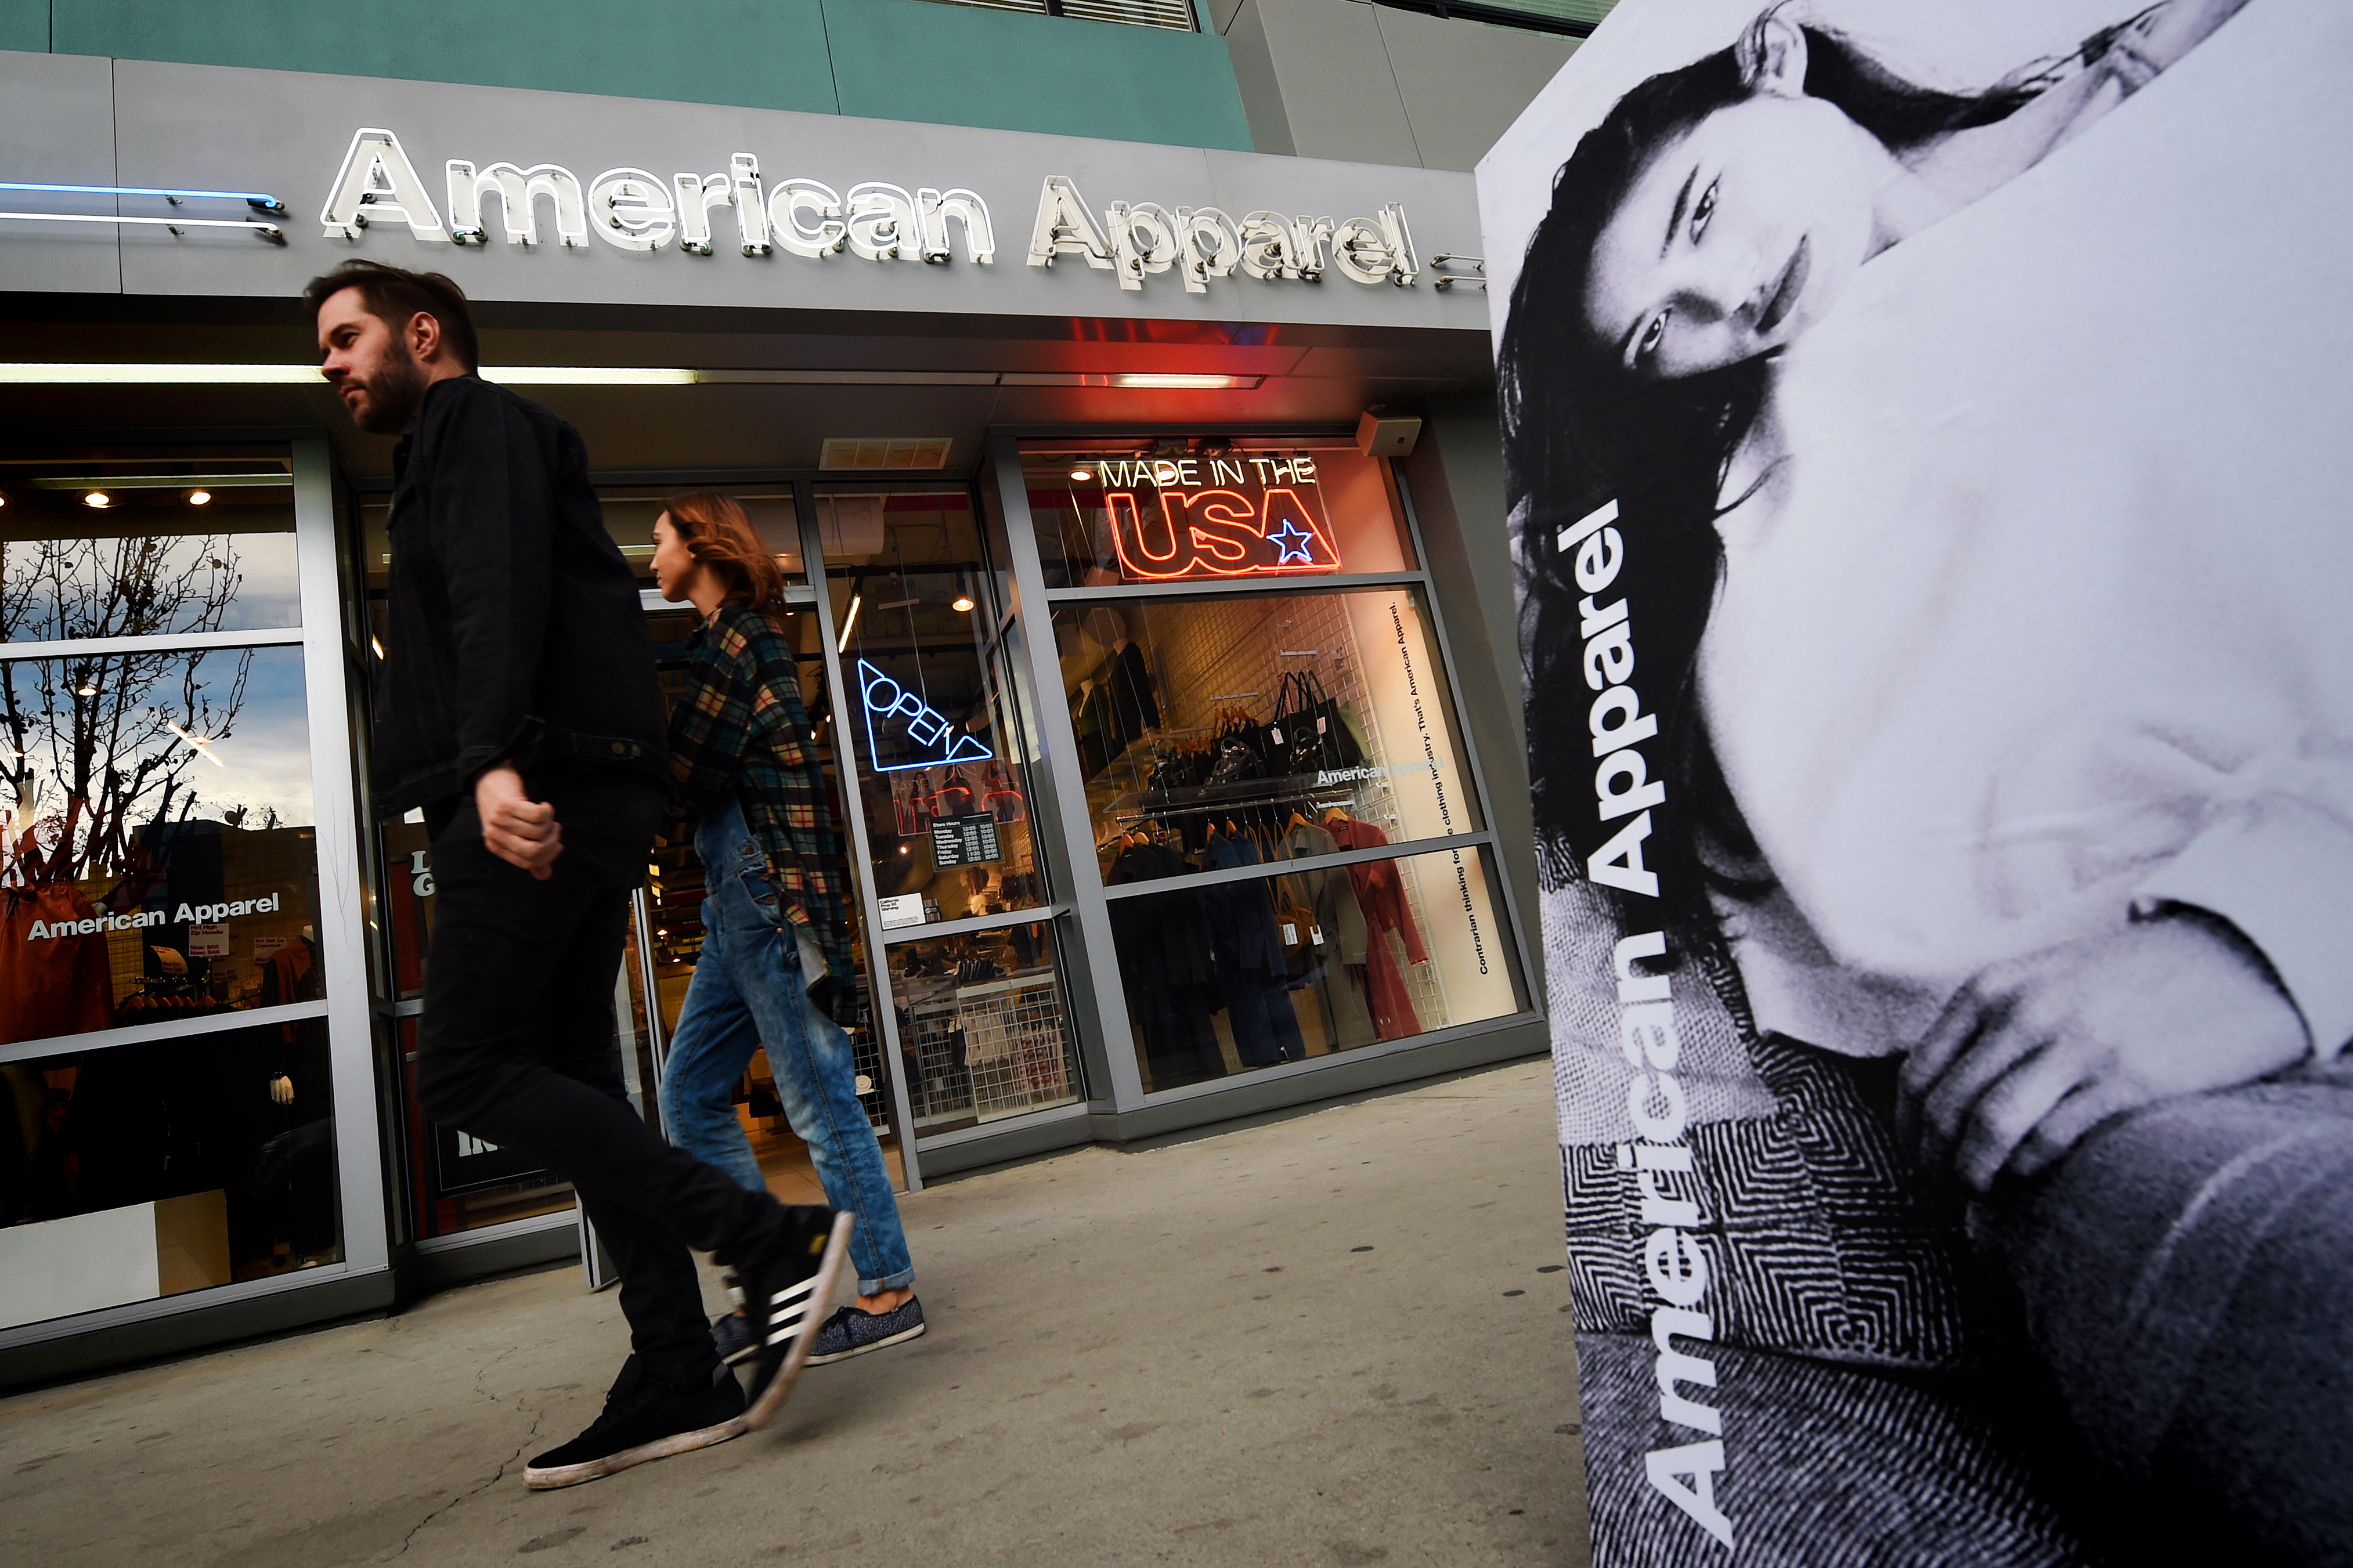 People walk past an American Apparel store in downtown Los Angeles on Jan. 27, 2016.